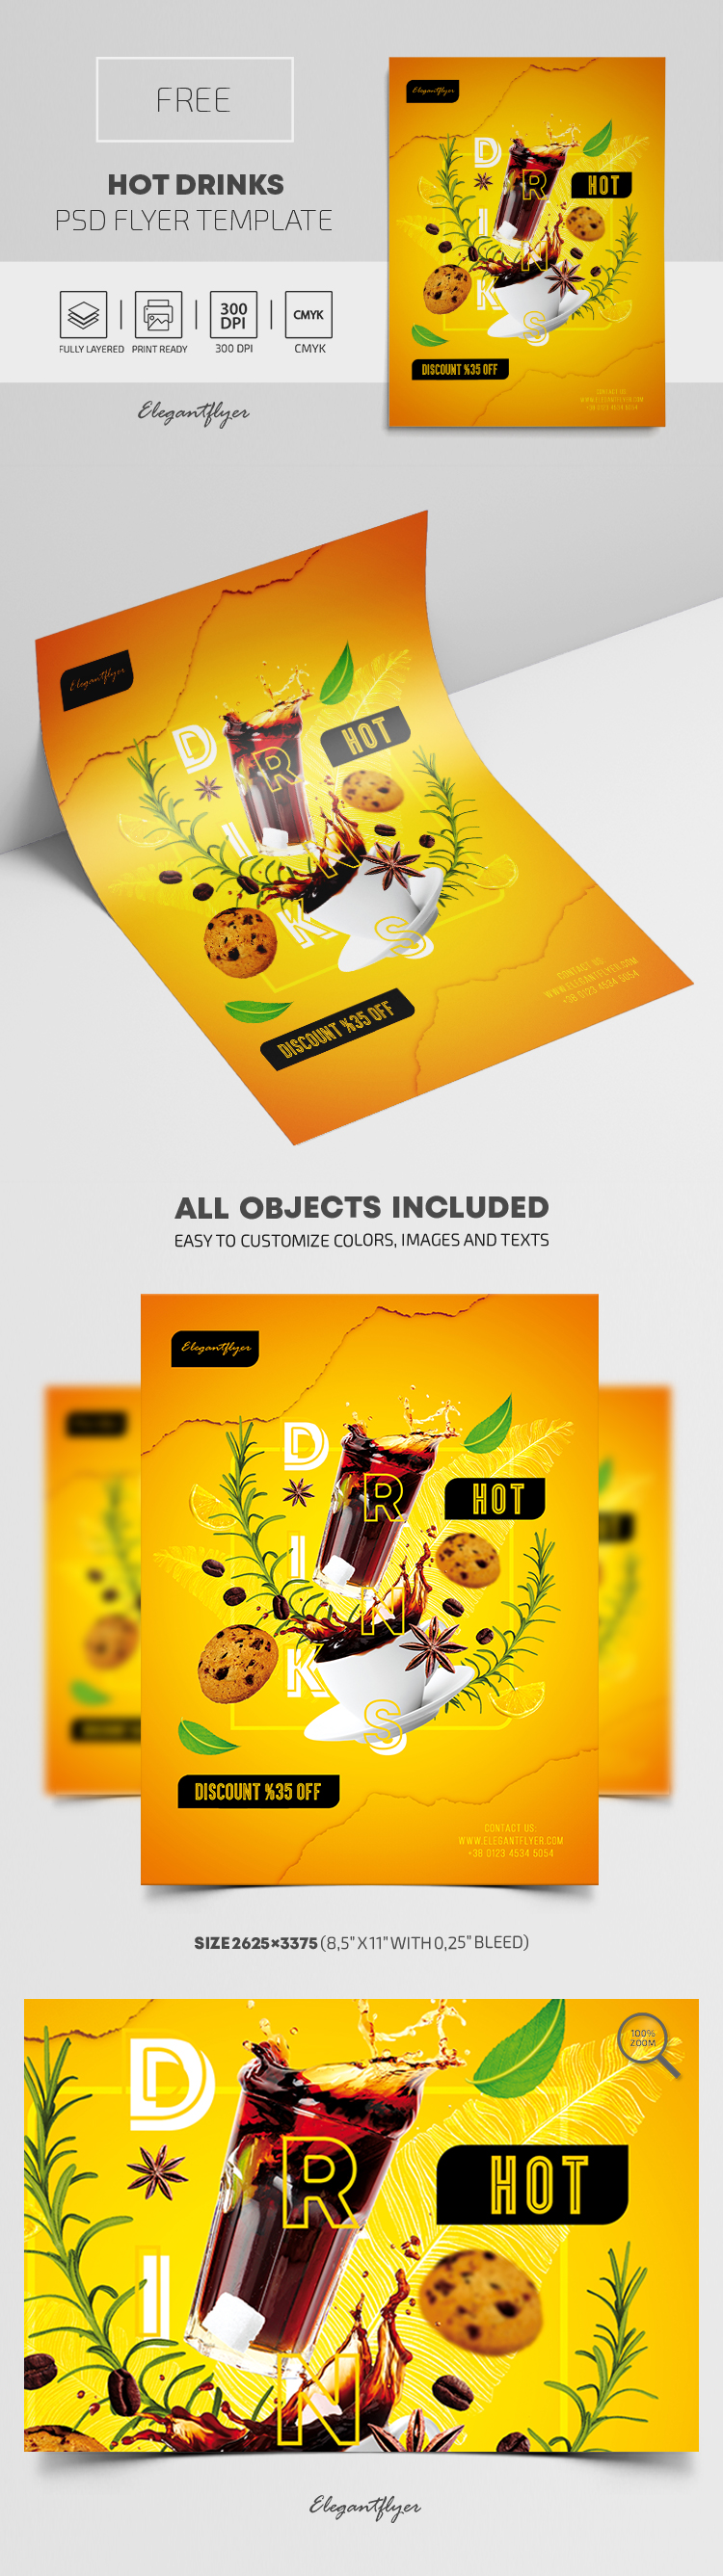 Hot Drinks – Free Flyer PSD Template